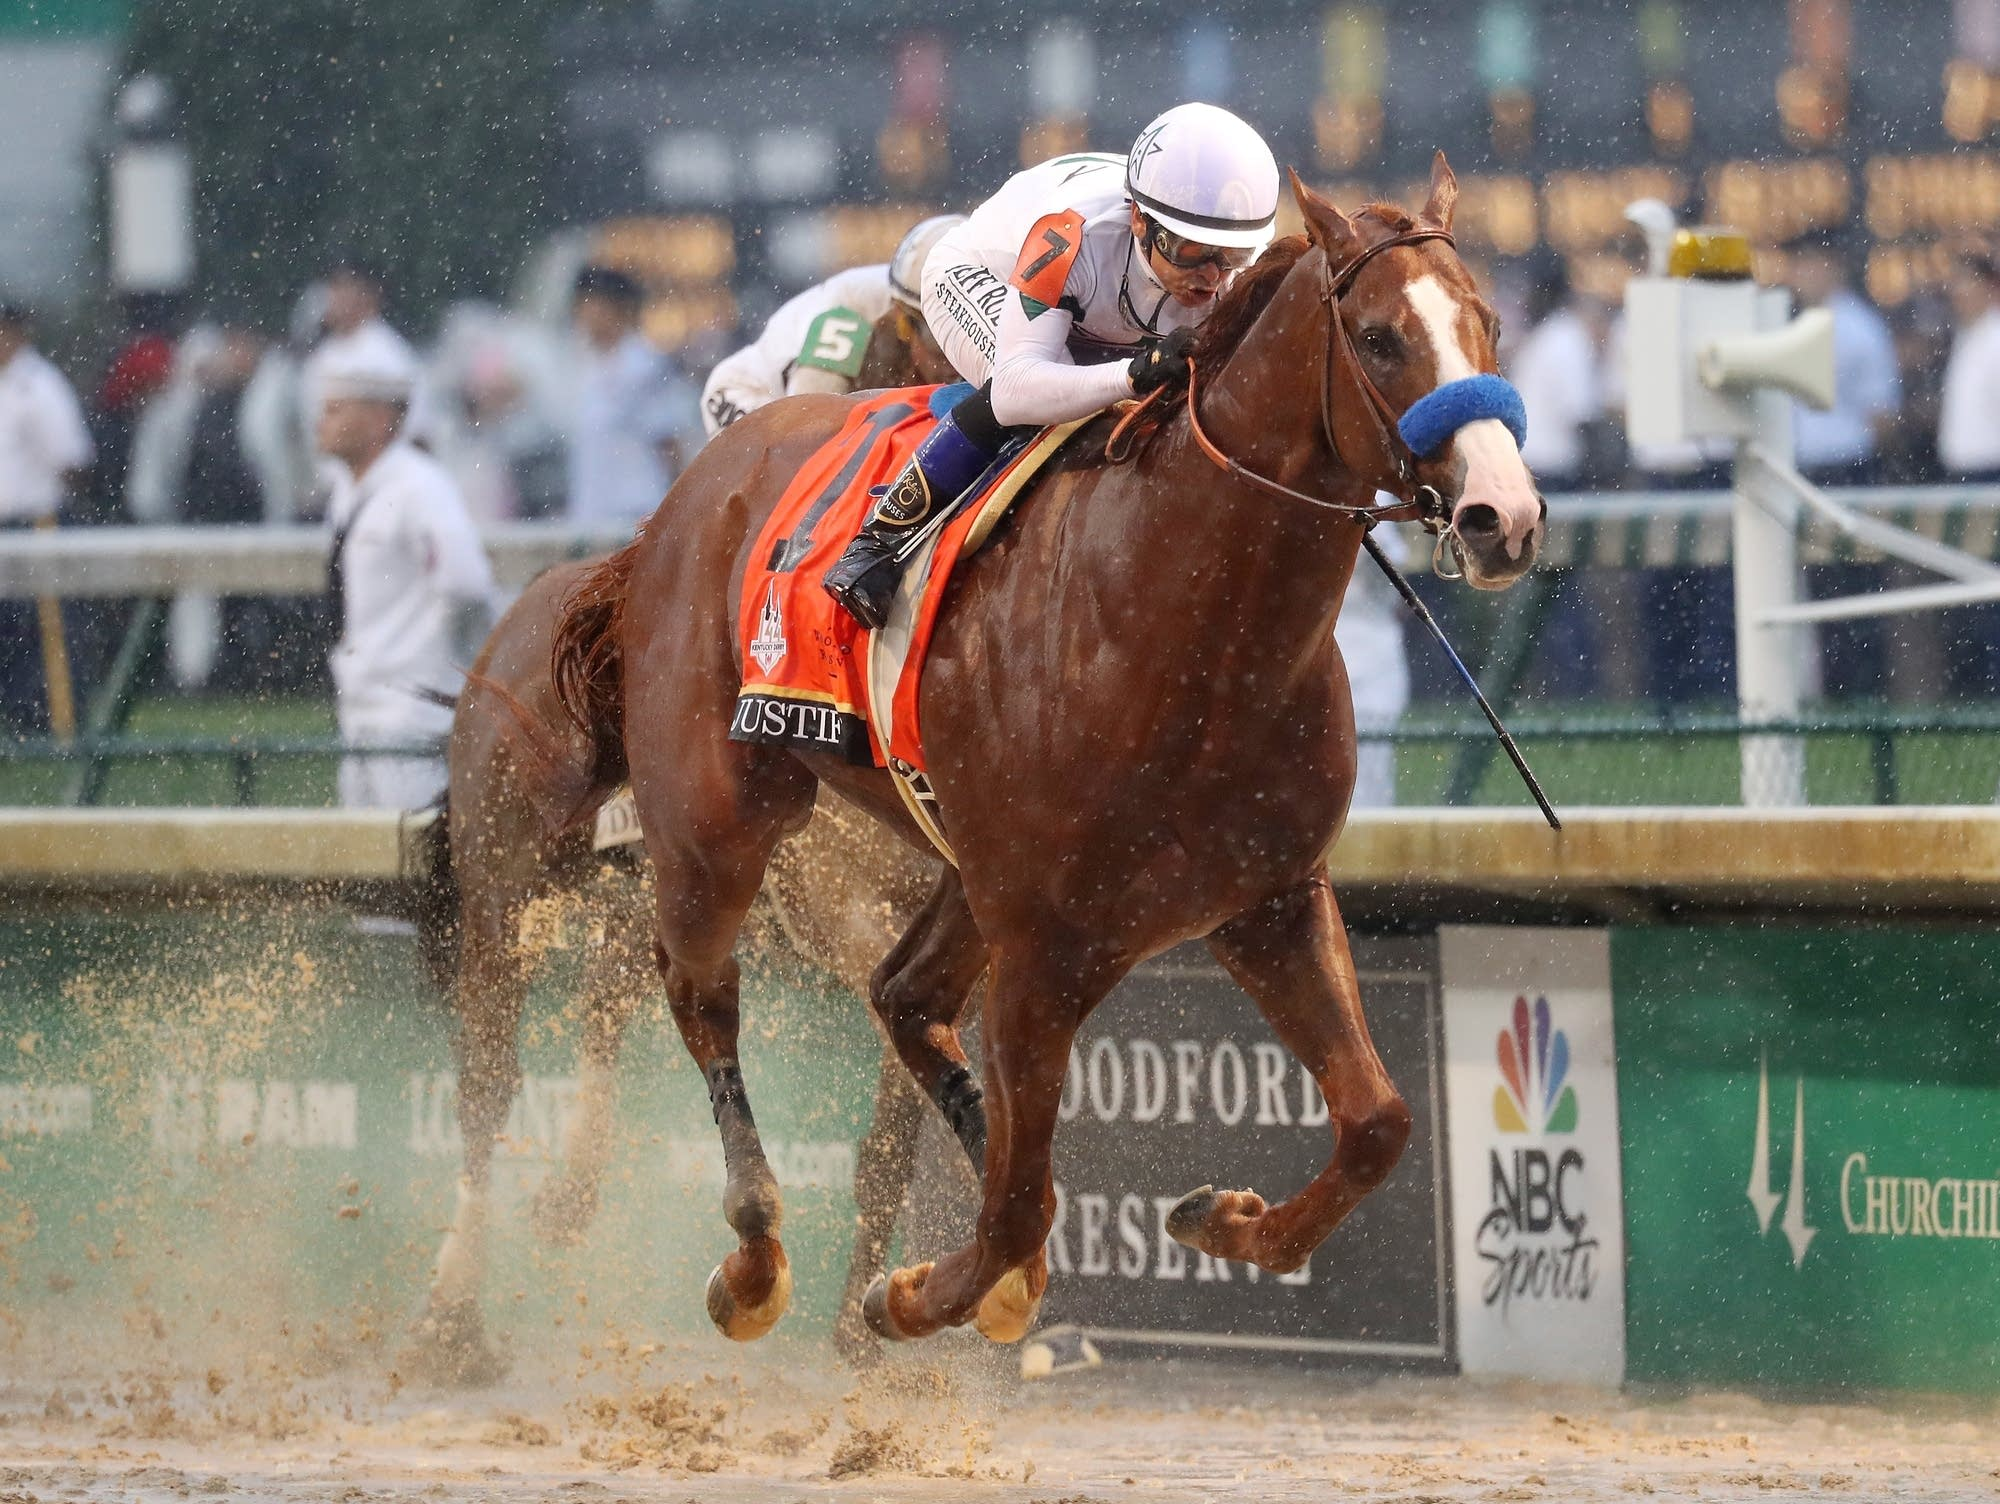 Justify Opens As Kentucky Derby Favorite After Drawing No